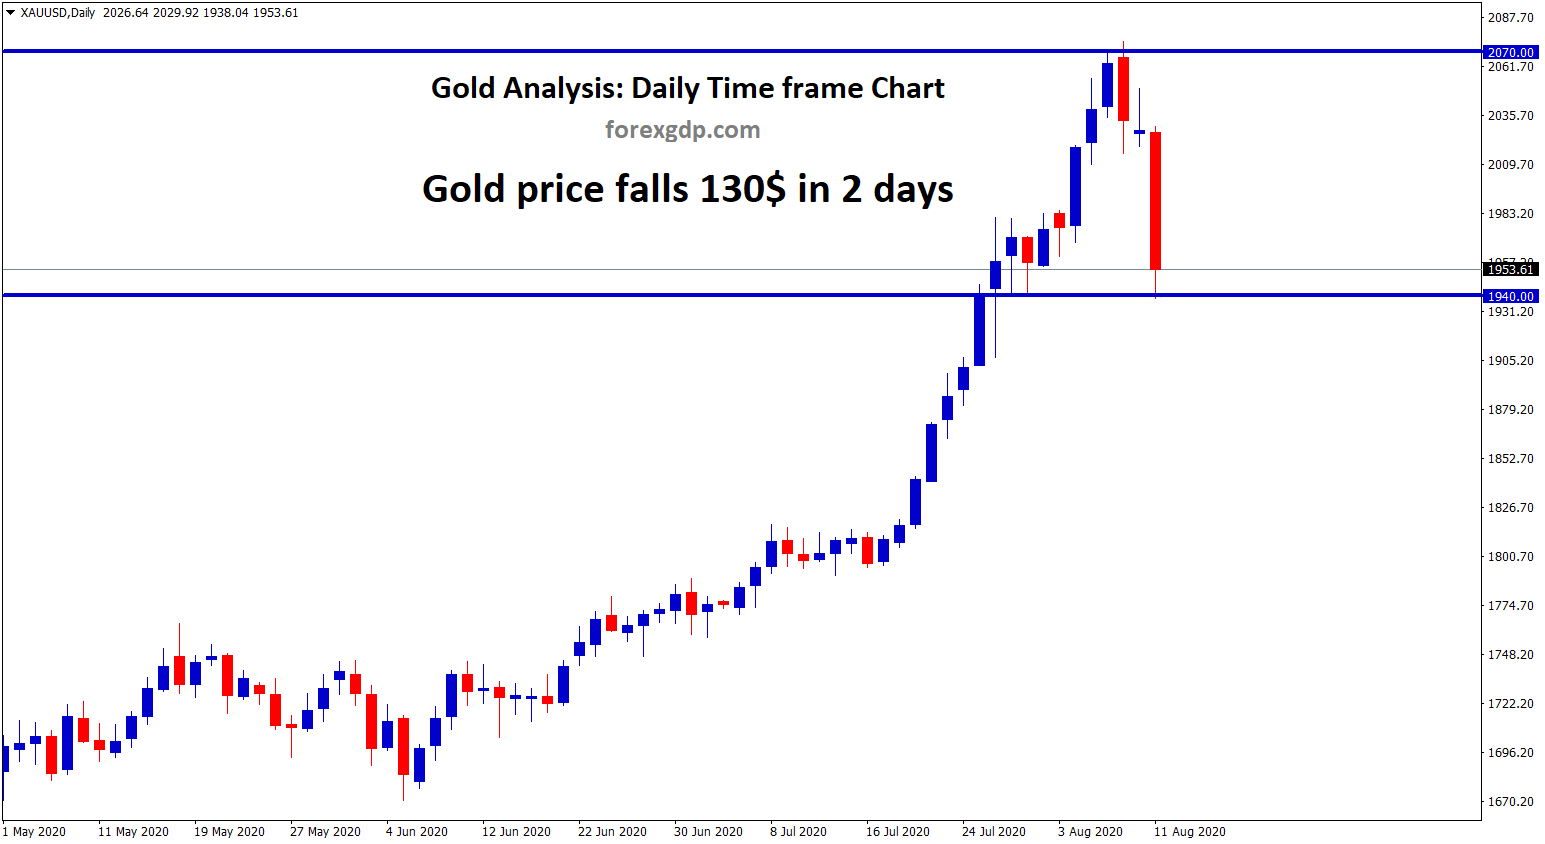 Gold price falls 130 USD in 2 days